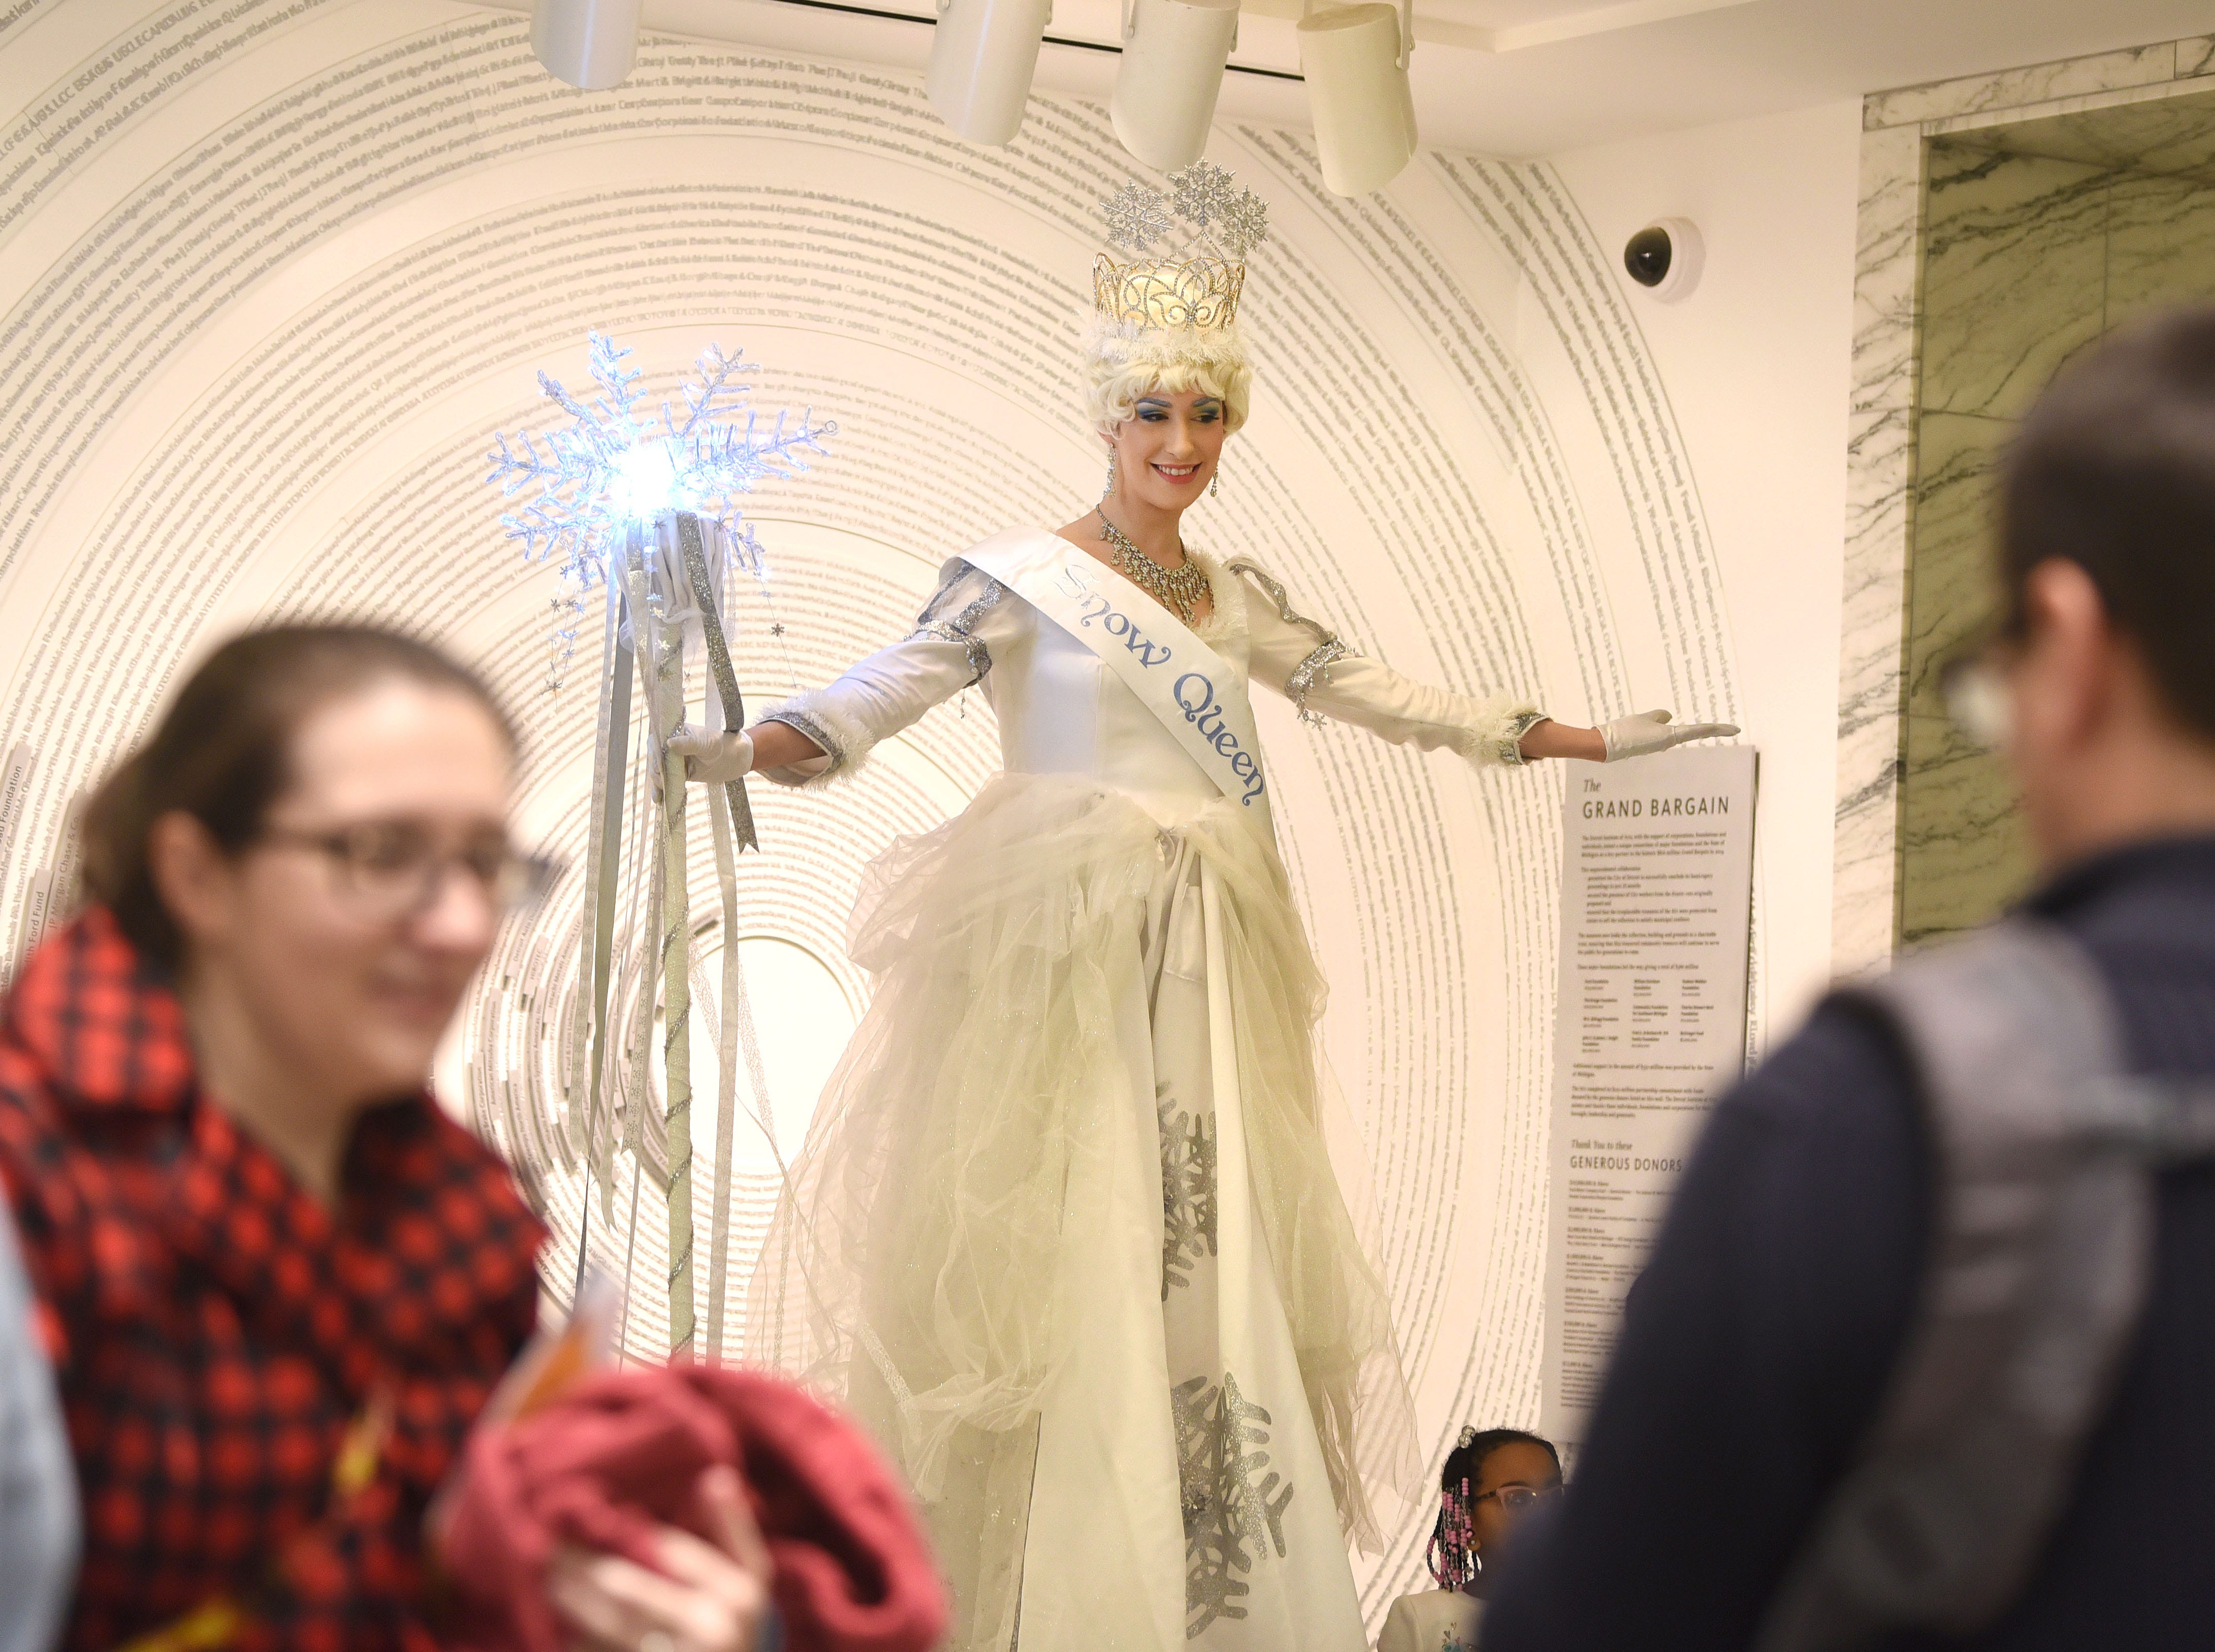 The Snow Queen poses for photographs in Prentis Court at the Detroit Institute of Art during Noel Night in Detroit on Saturday, December 1, 2018.